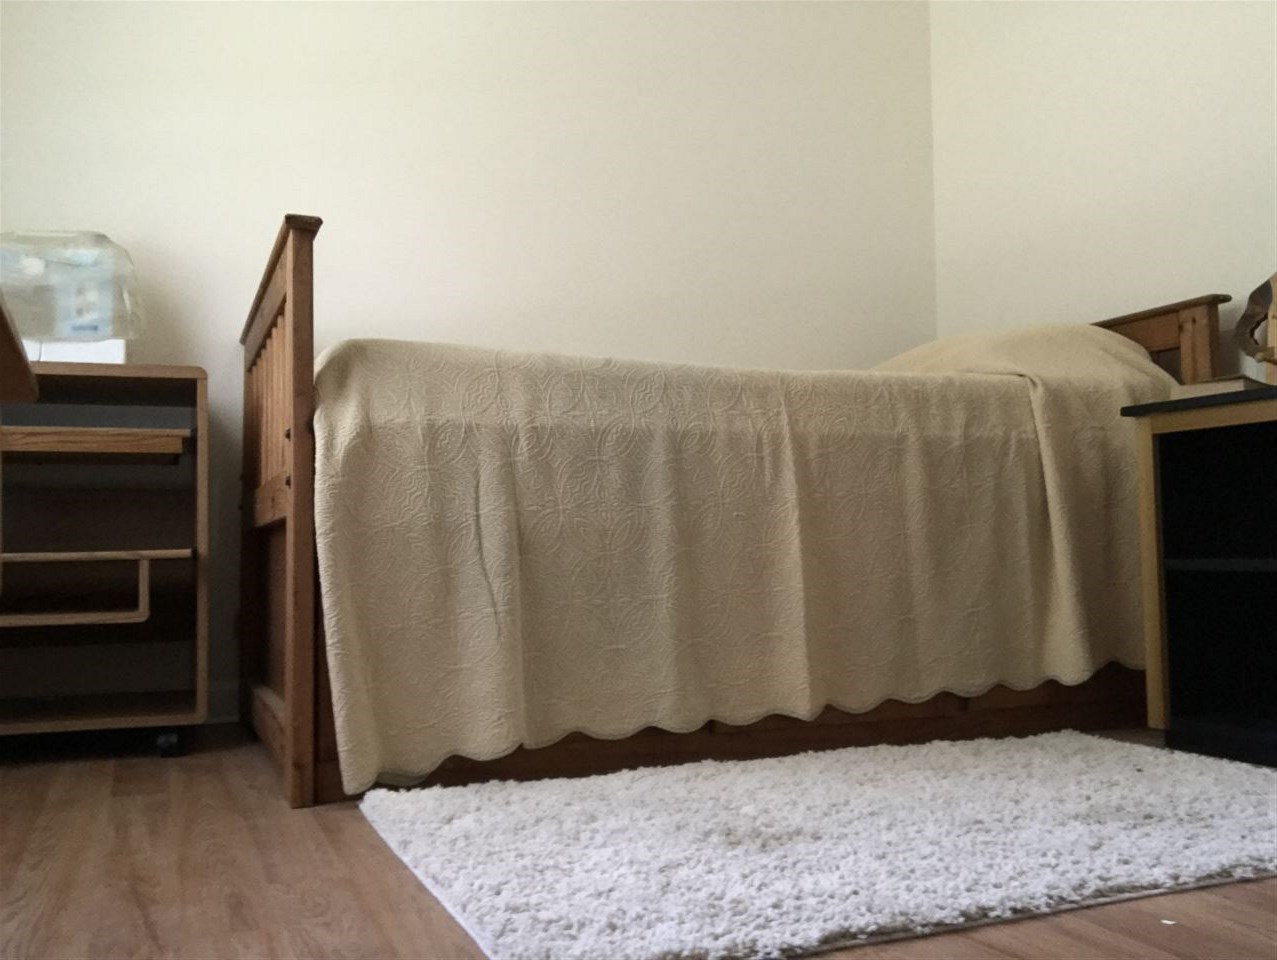 Spare bedroom / sewing room 12314900